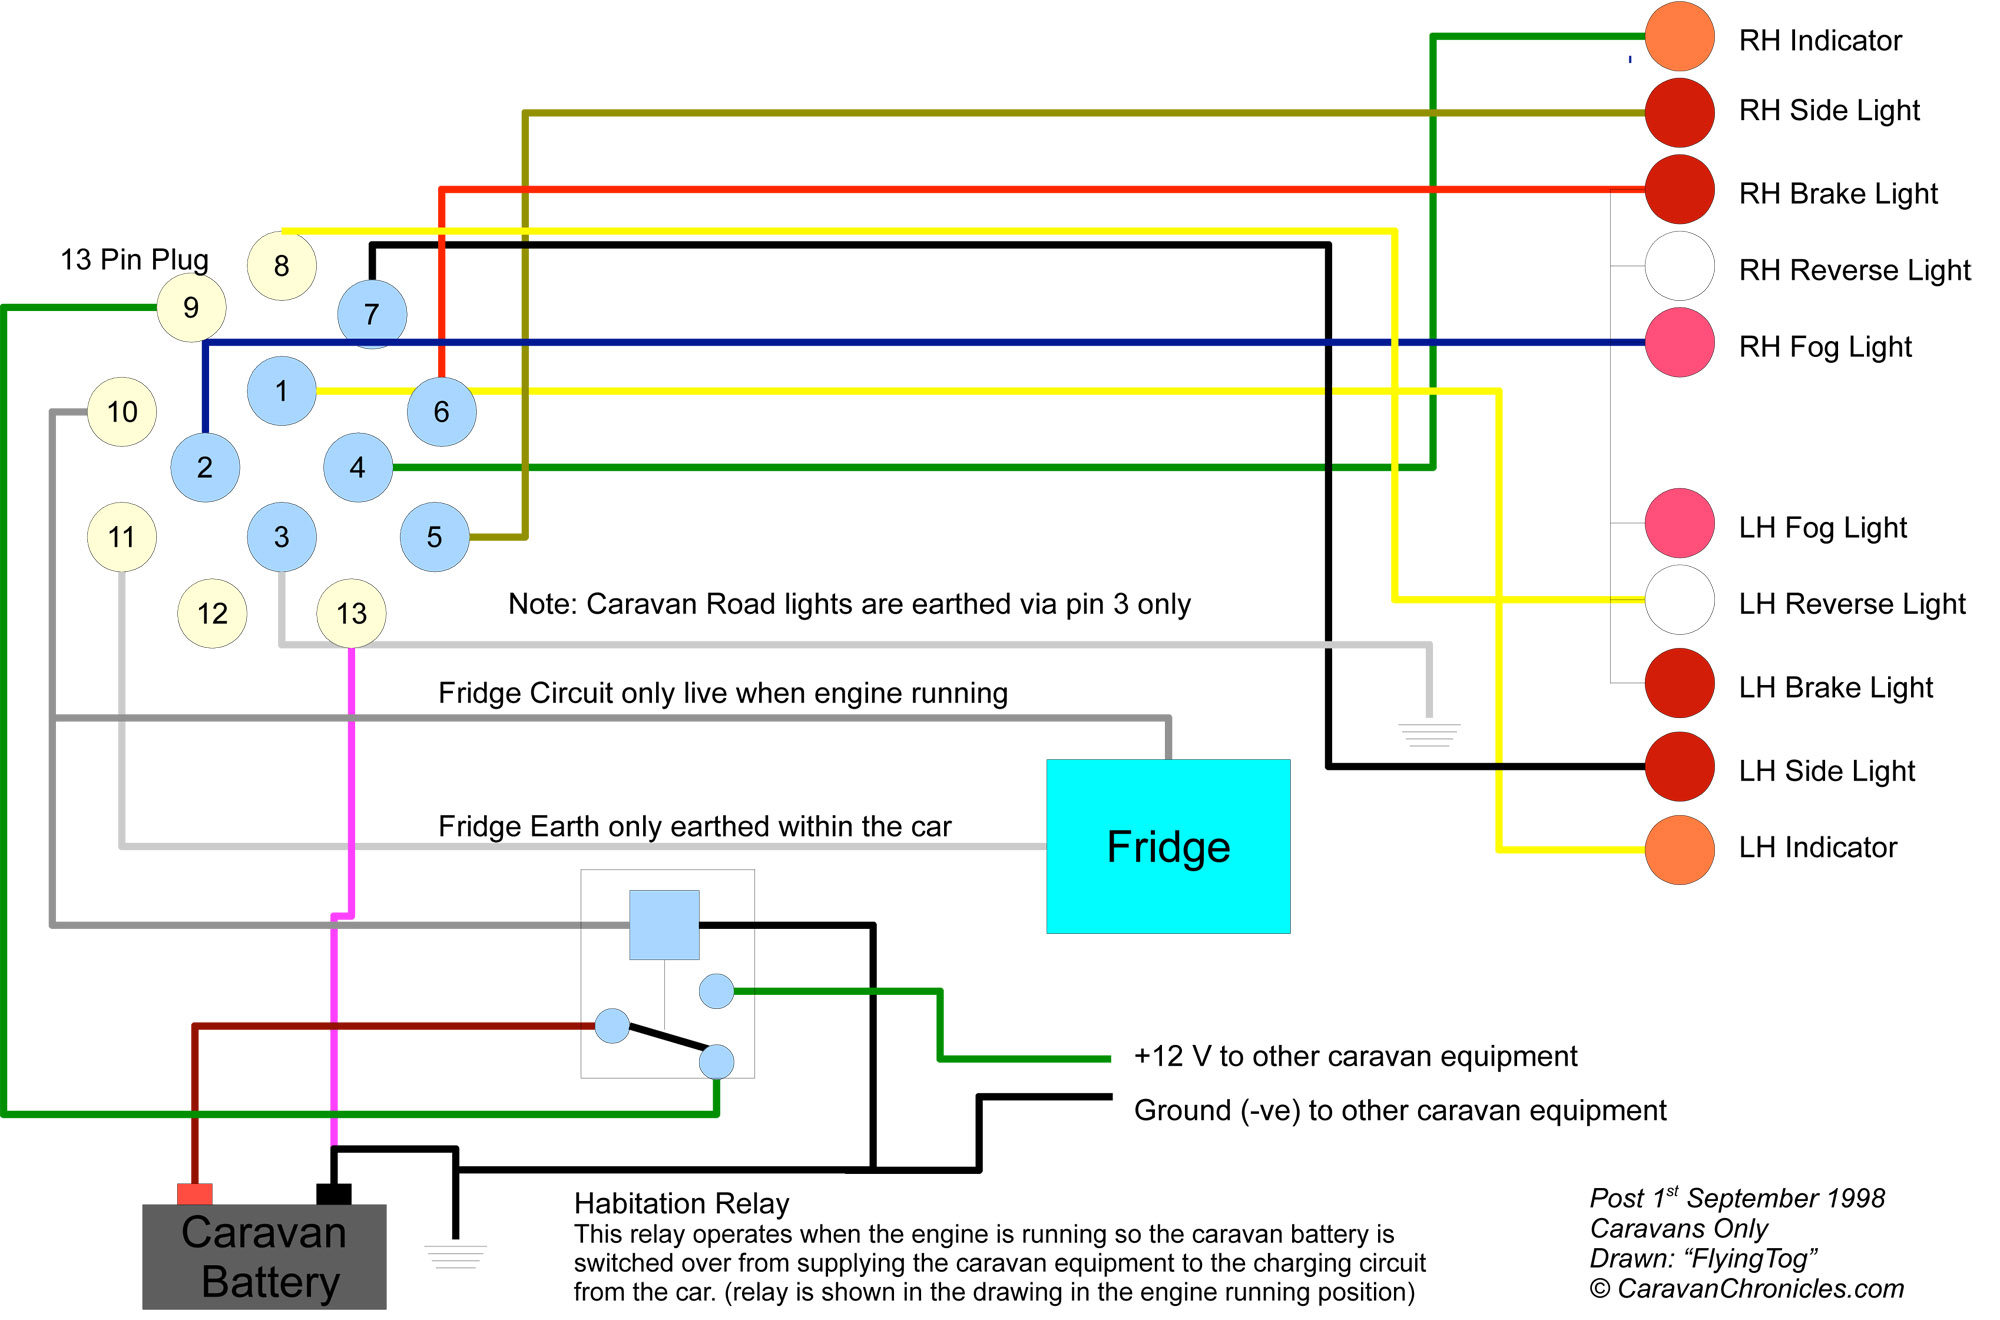 lunar meteorite caravan wiring diagram understanding the leisure battery charging circuit ... #1